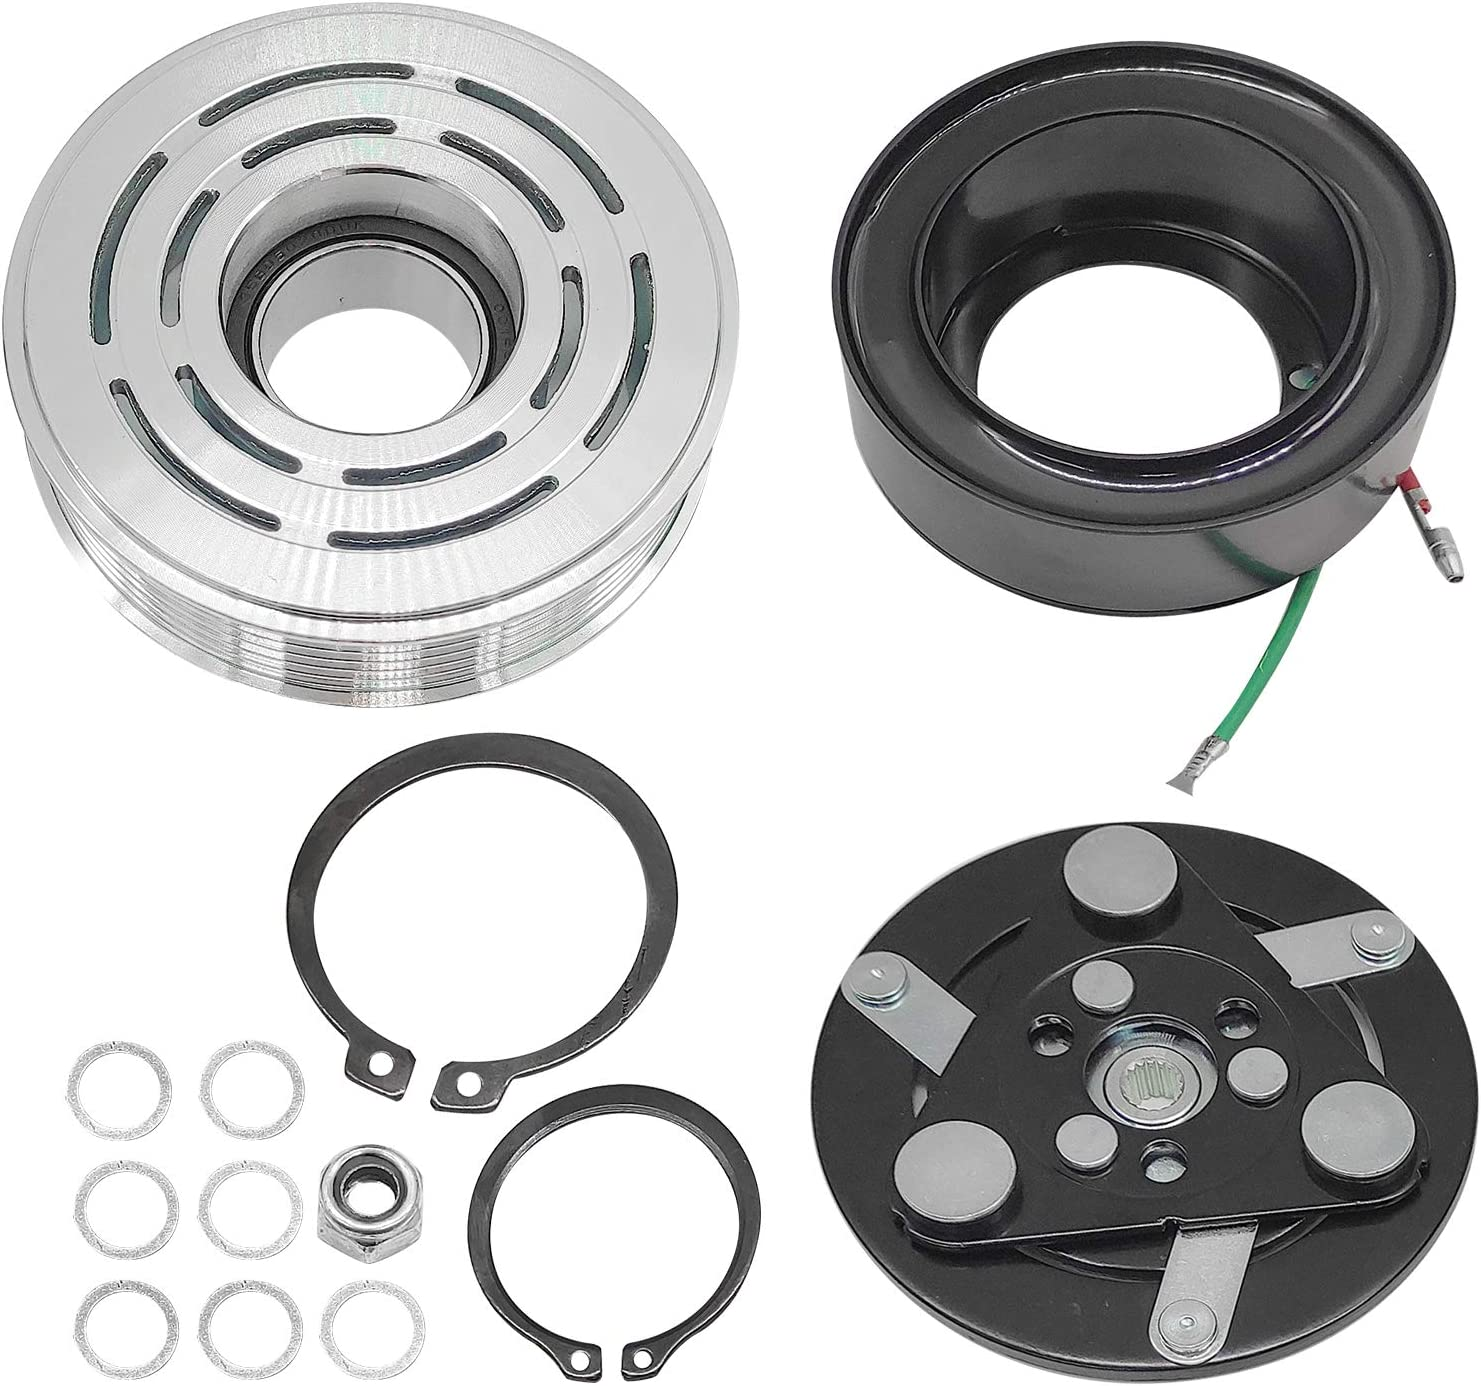 AC Compressor clutch 2021 autumn and winter new Clutch Coil Kit At the price Co Assembly Air